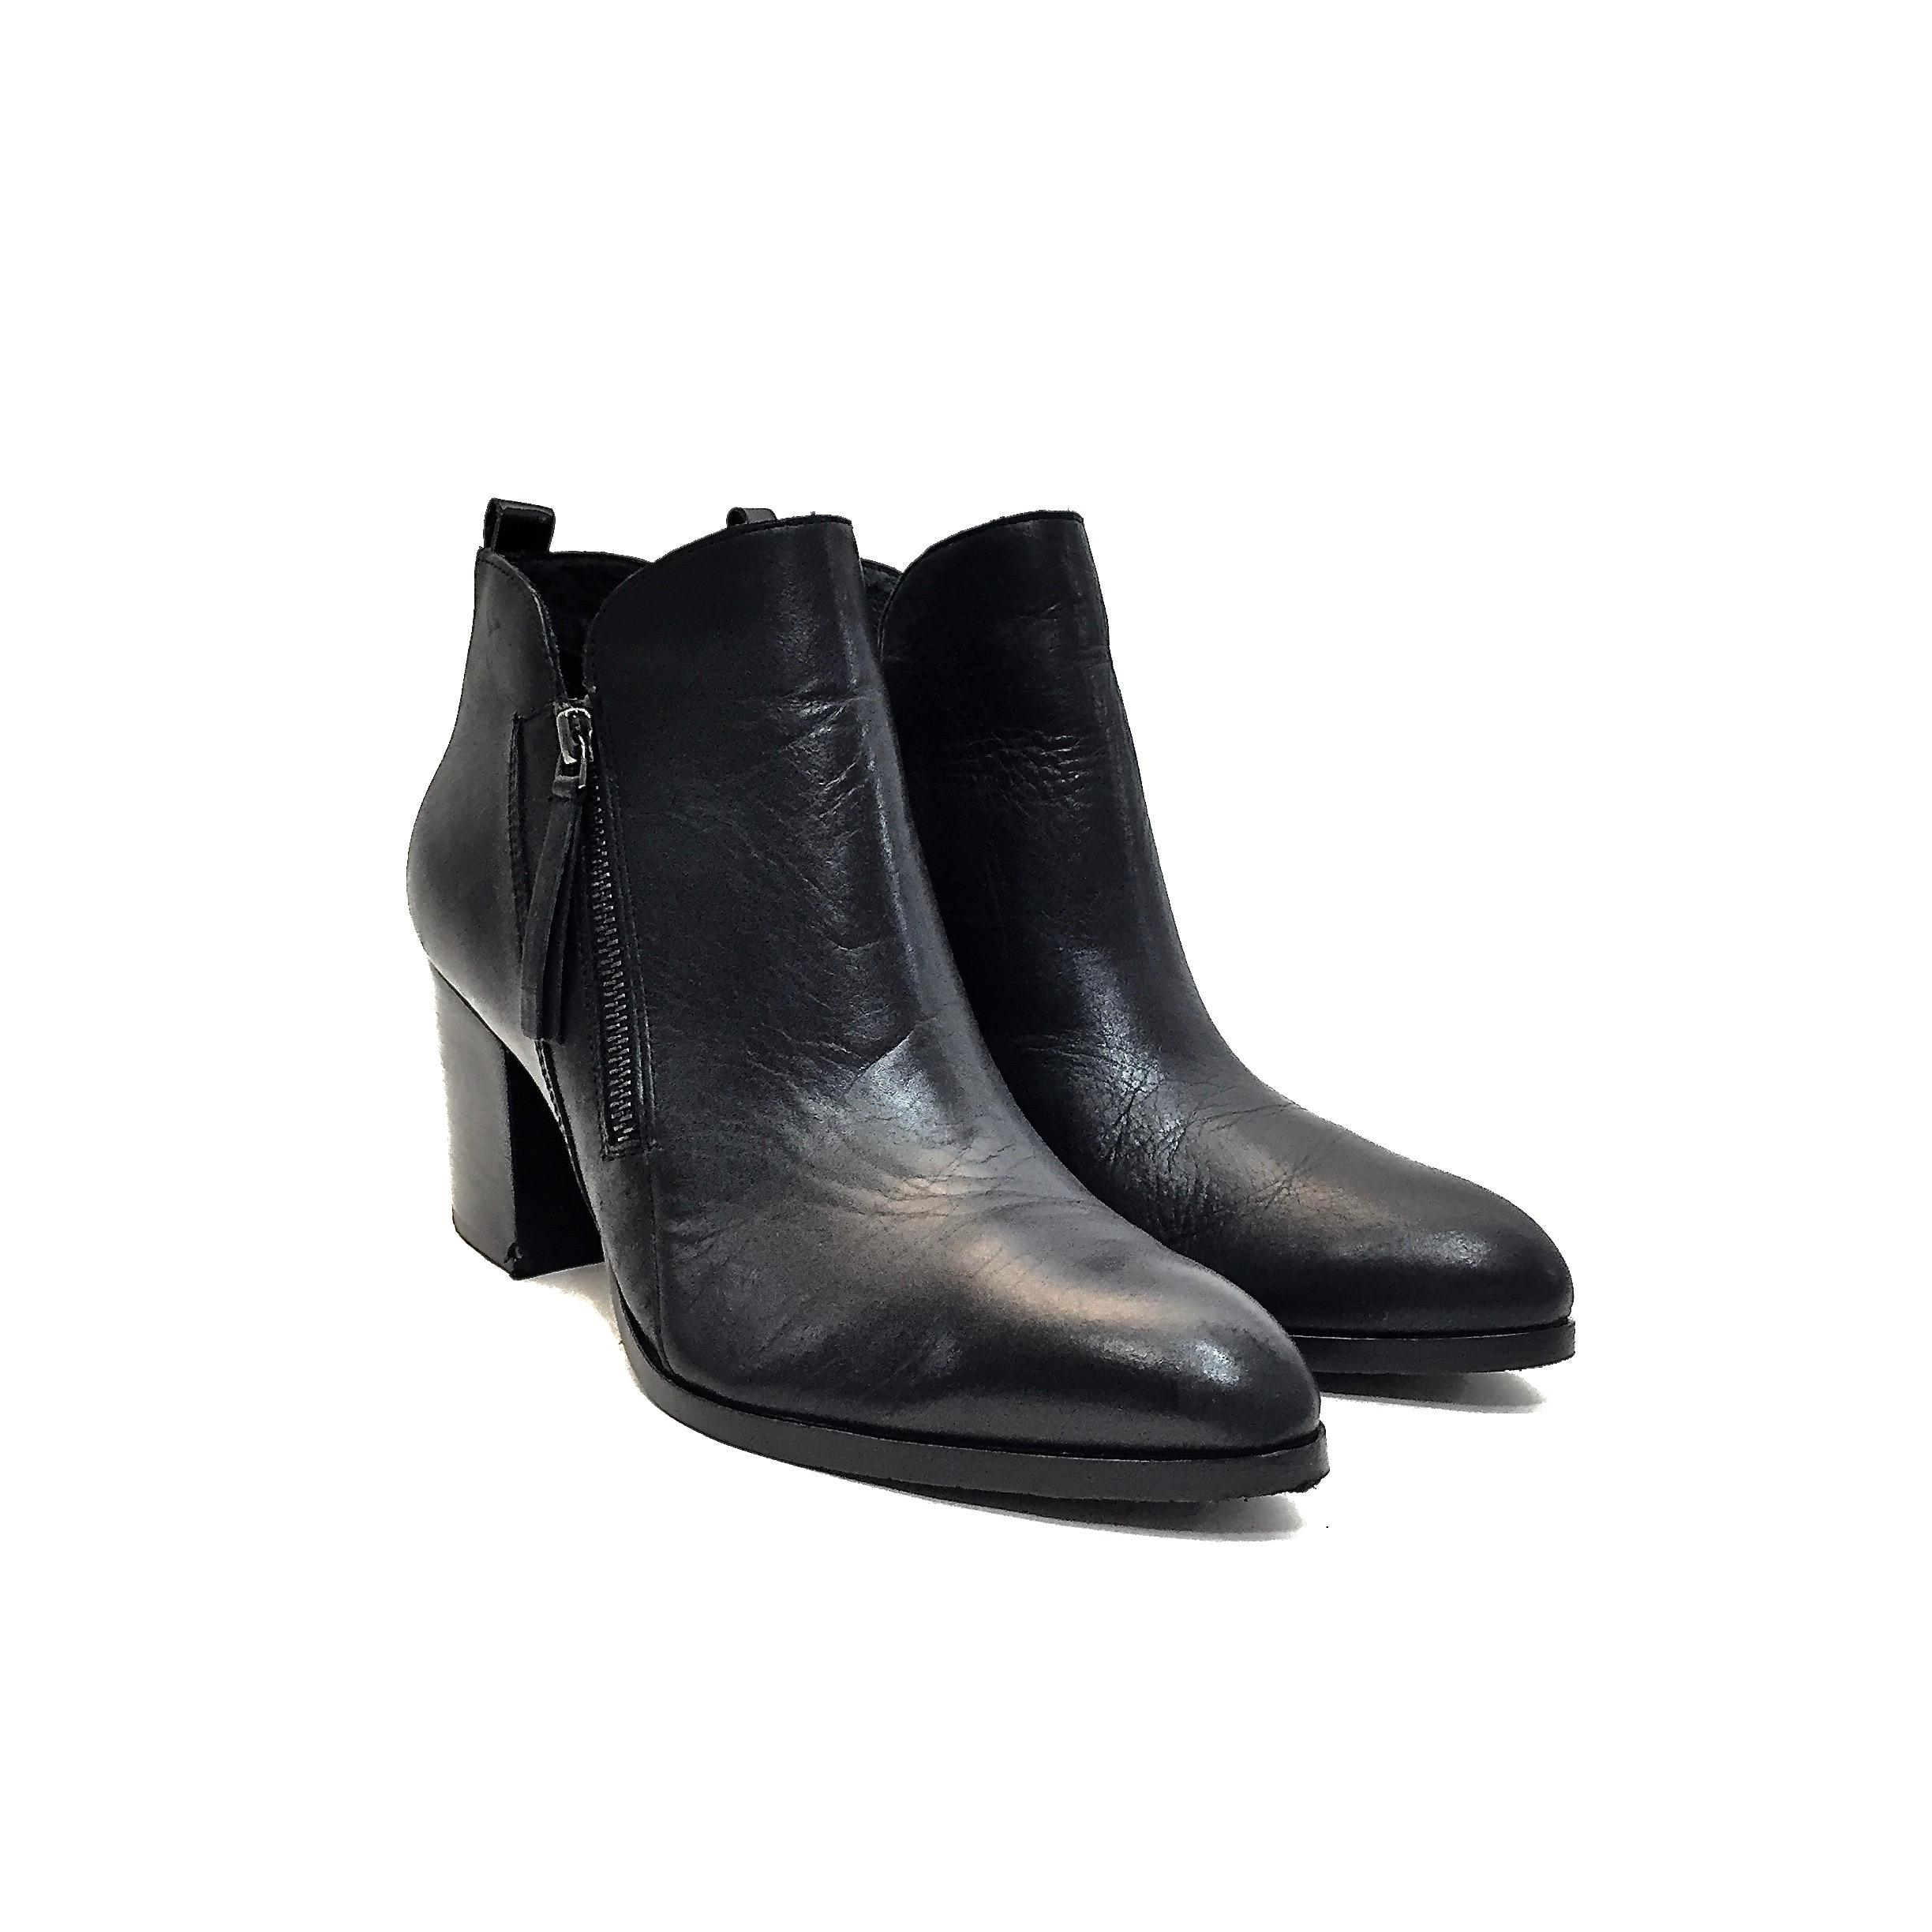 8b7ed254cd6 Donald Donald Donald J. Pliner Black Leather Pointy Toe Zip-up Ankle ...